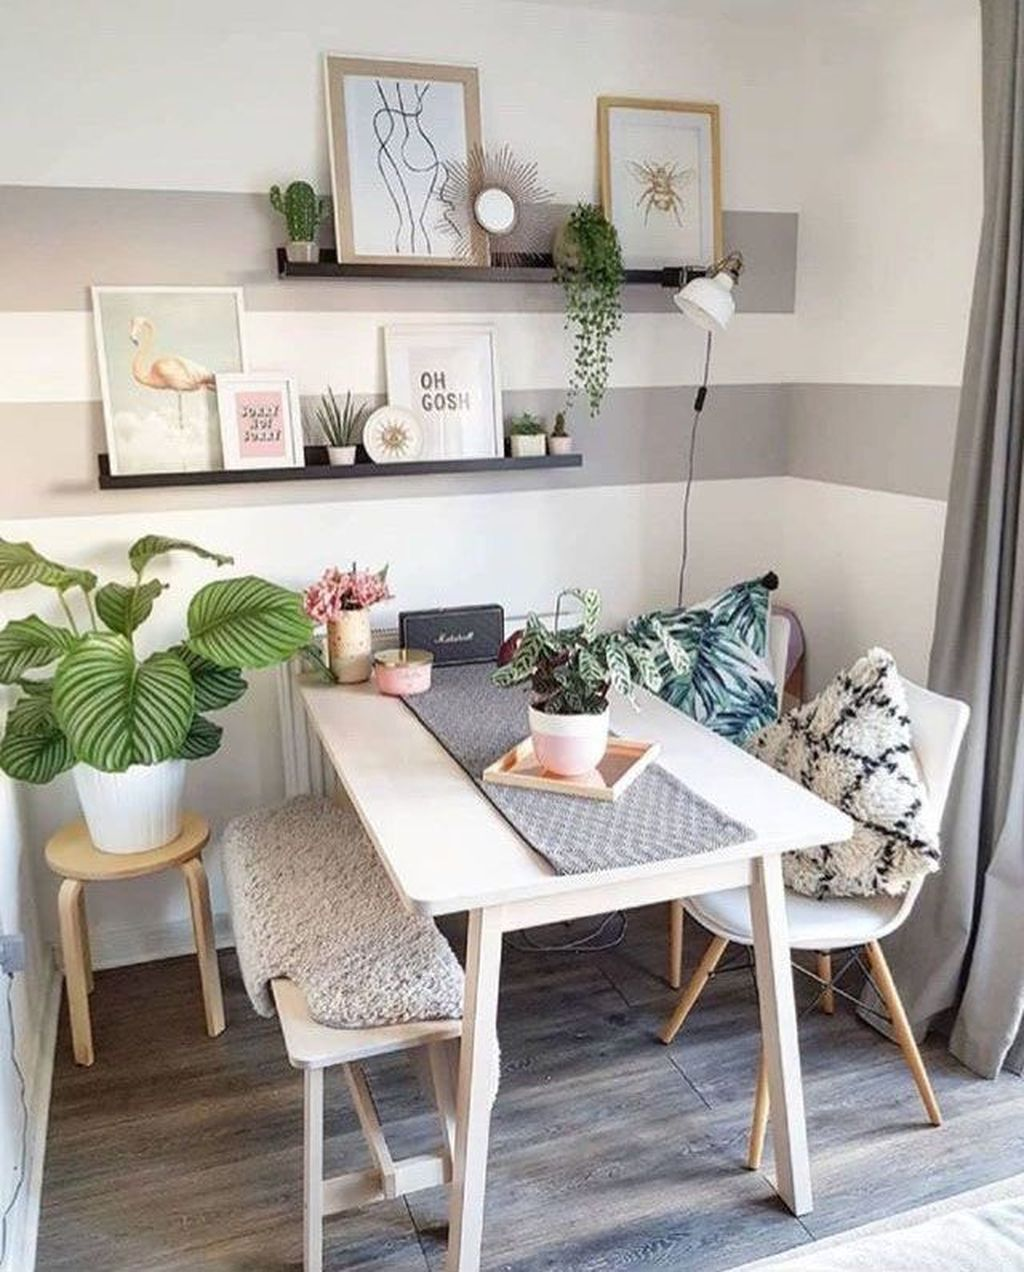 The Best Small Apartment Dining Room Ideas Small Apartment Dining Room Apartment Dining Room Apartment Dining